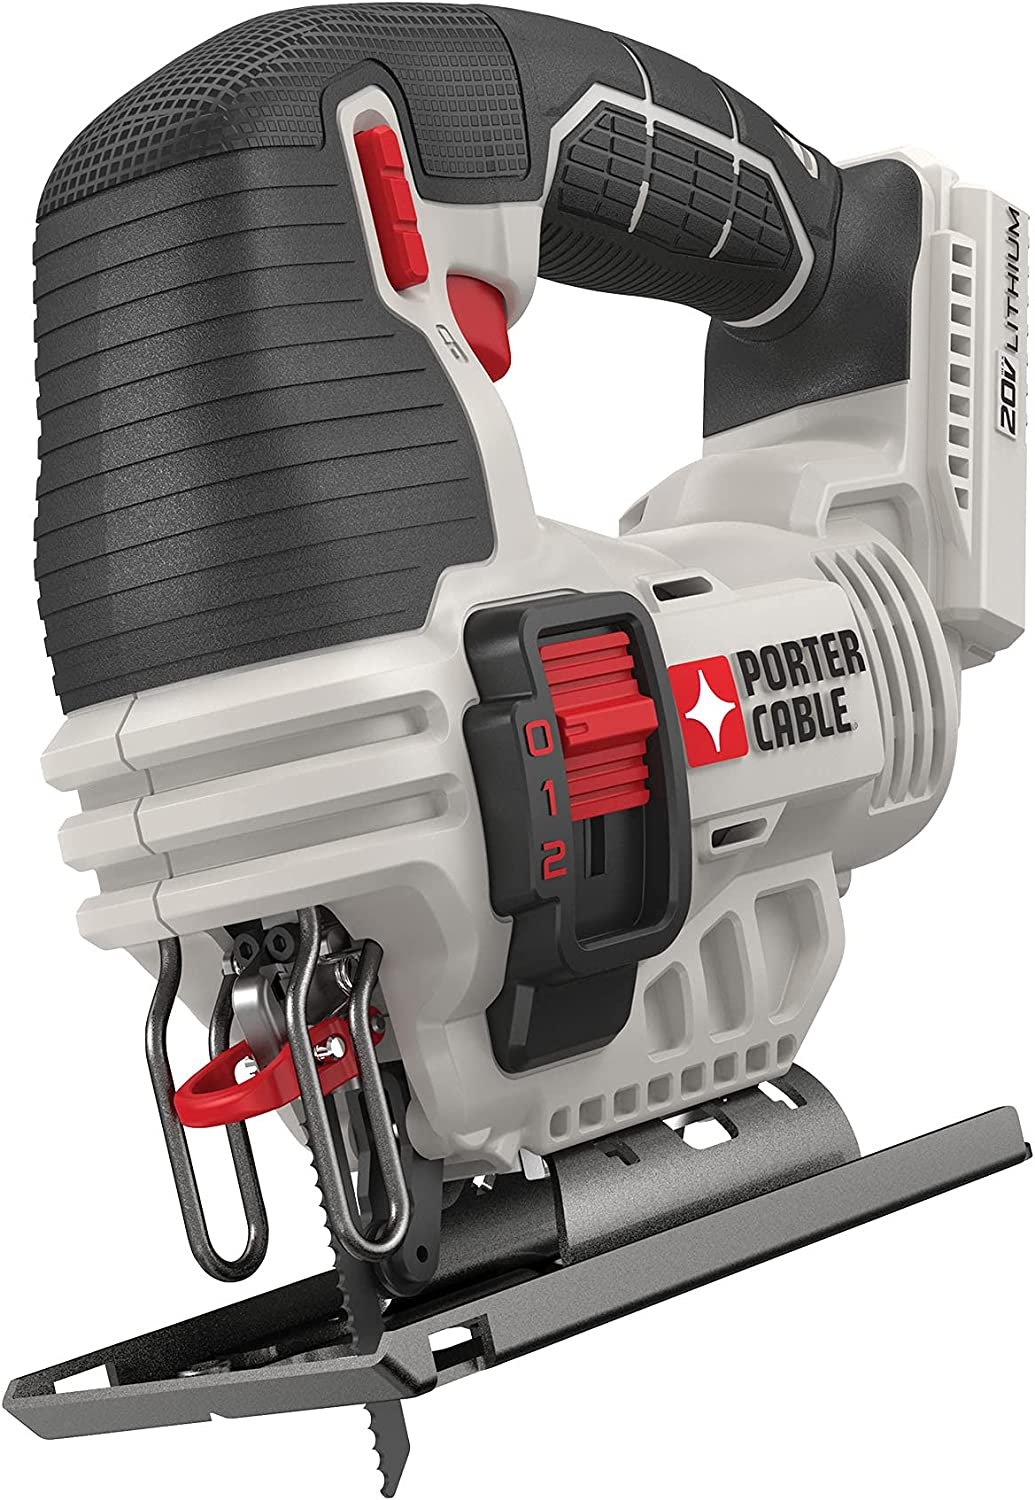 PORTER-CABLE 20V MAX Jig Saw